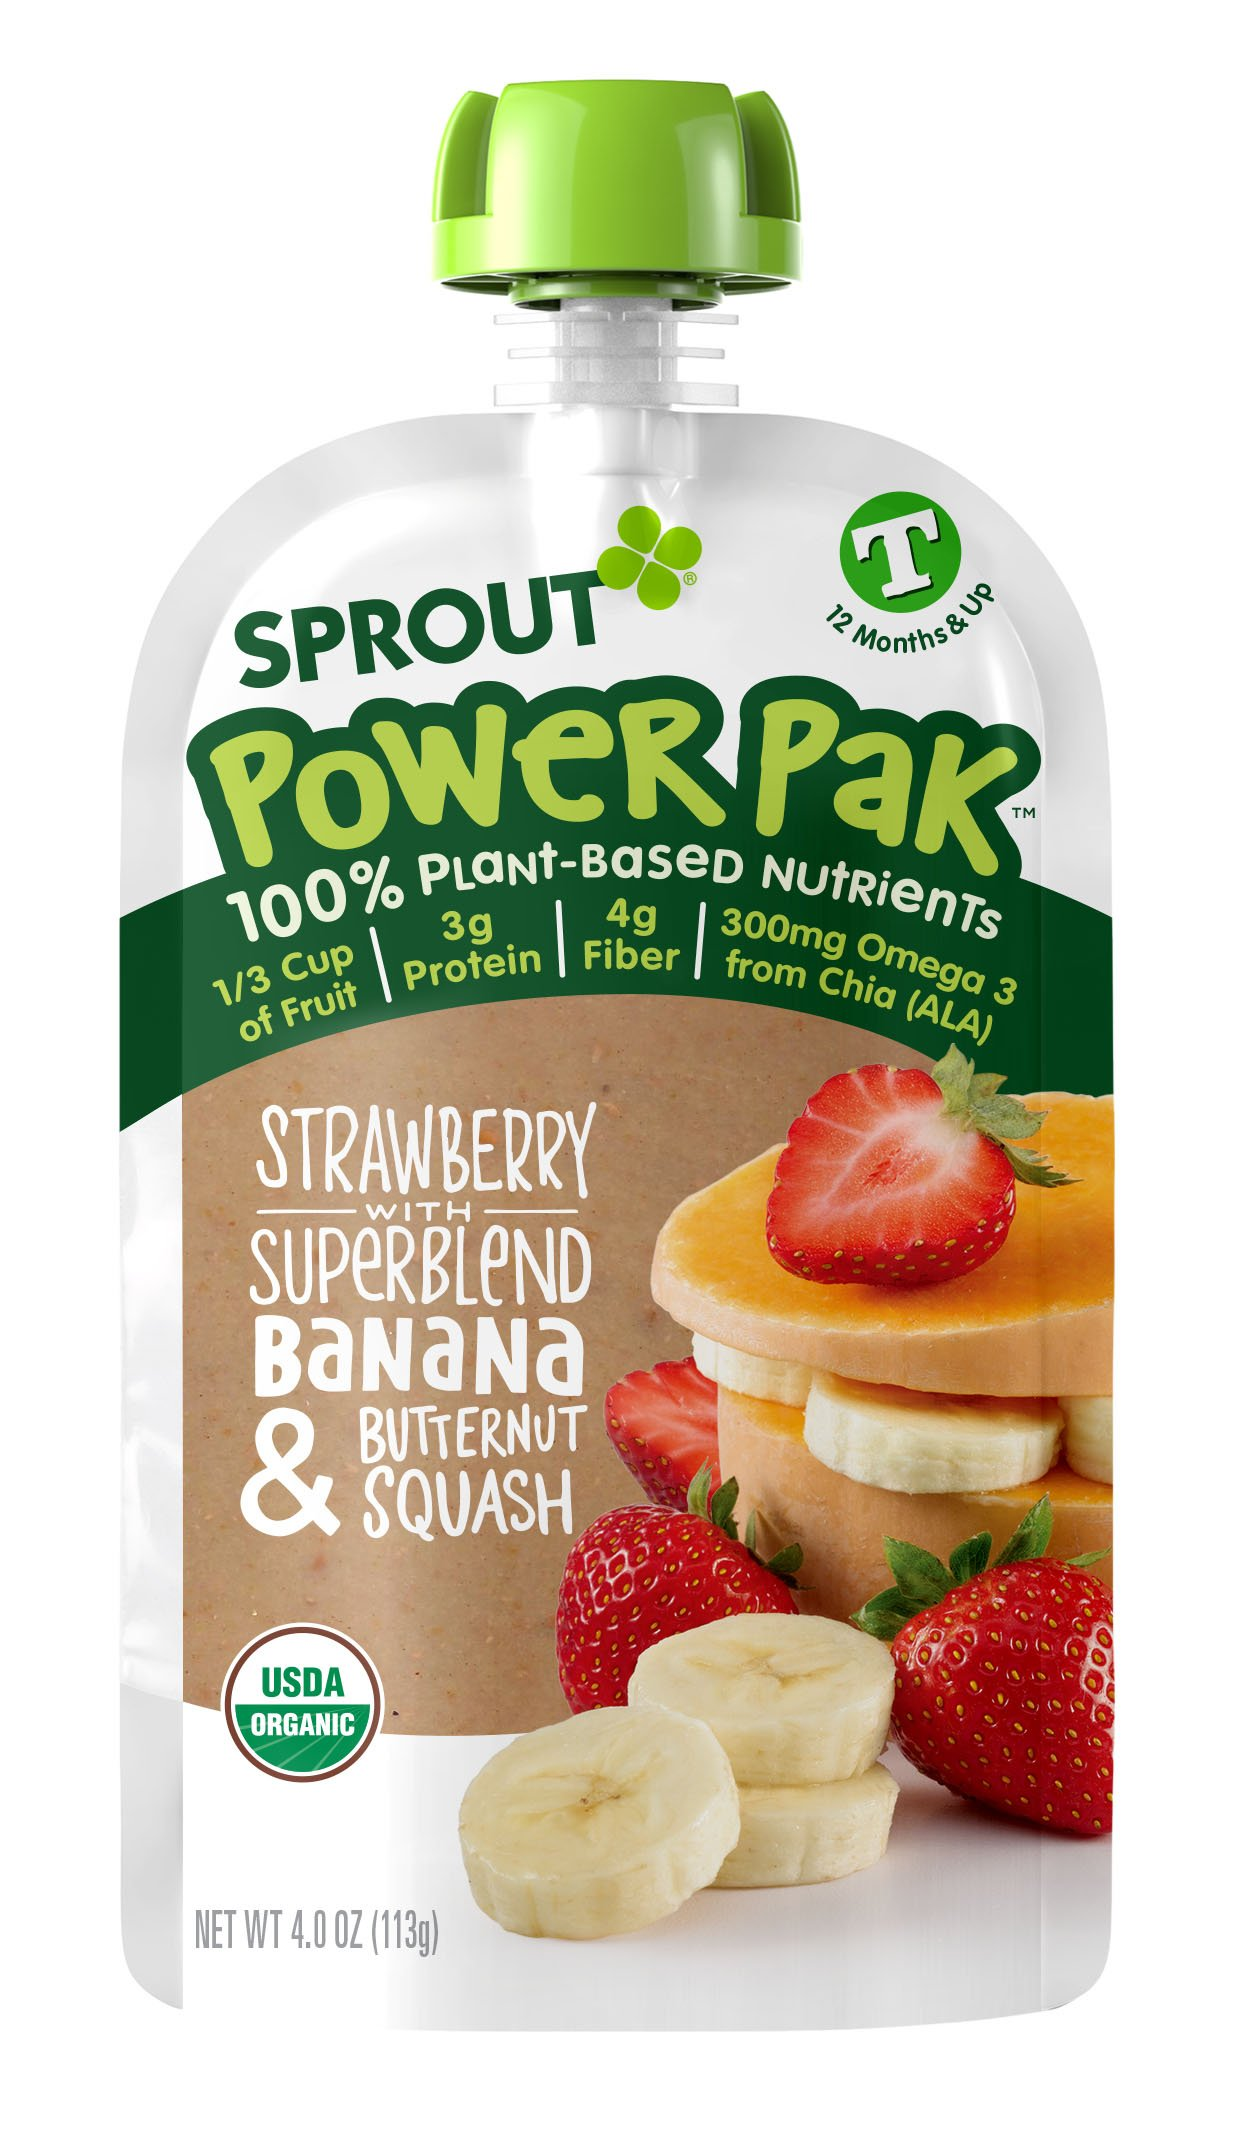 Sprout Organic Baby Food Pouches Sprout Organic Power Pak Toddler Food Pouch, Strawberry with Superblend Banana & Butternut Squash, 4 Ounce(Pack of 12); USDA Organic, 3 Grams of Protein,Plant Powered